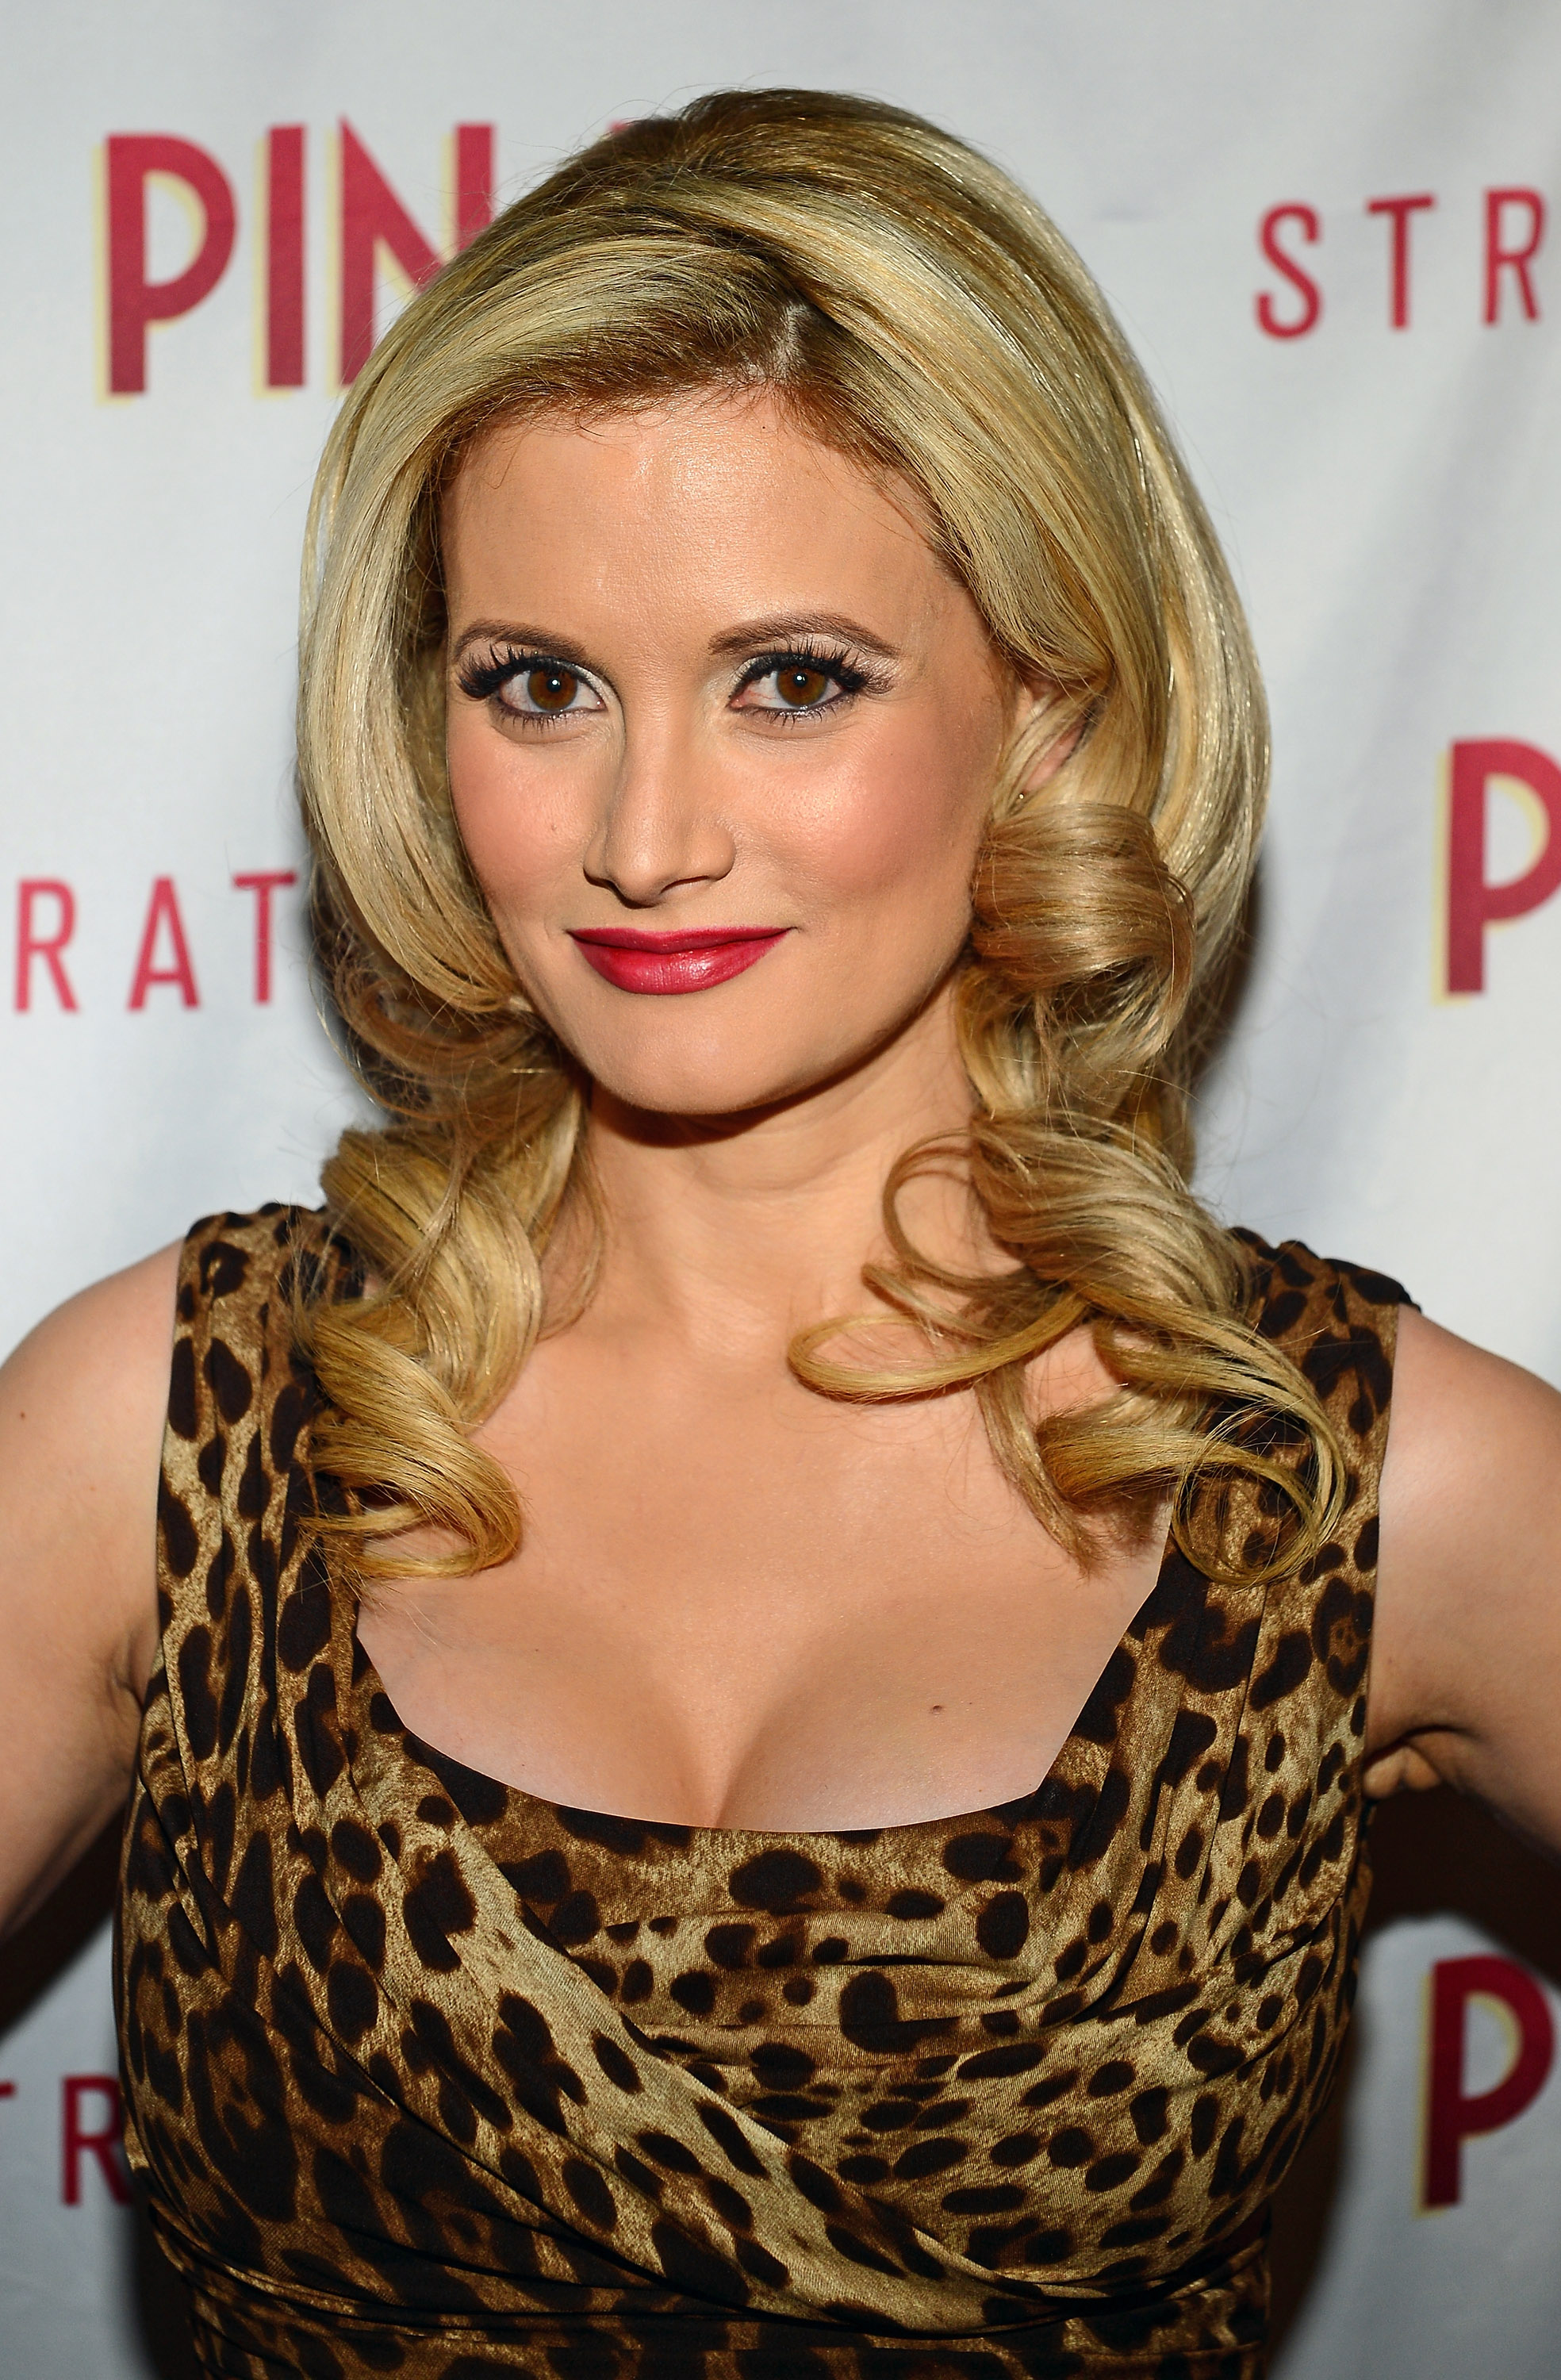 Like Holly madison as